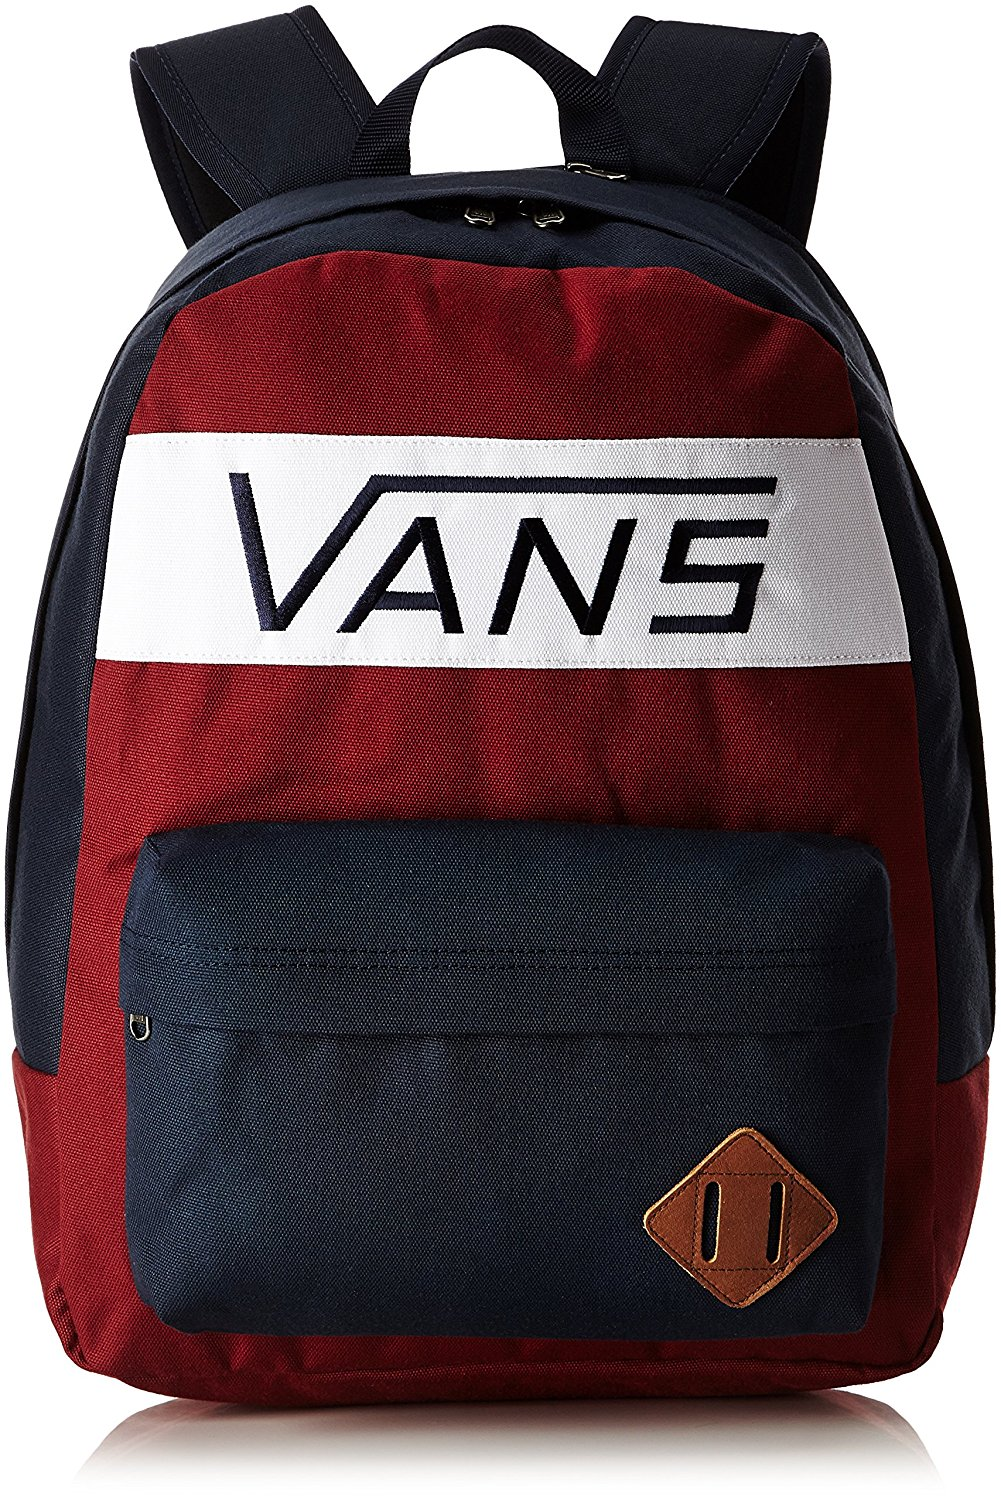 c2c57a4d671 Get Quotations · Vans mens OLD SKOOL PLUS BACKPACK VN-02TM